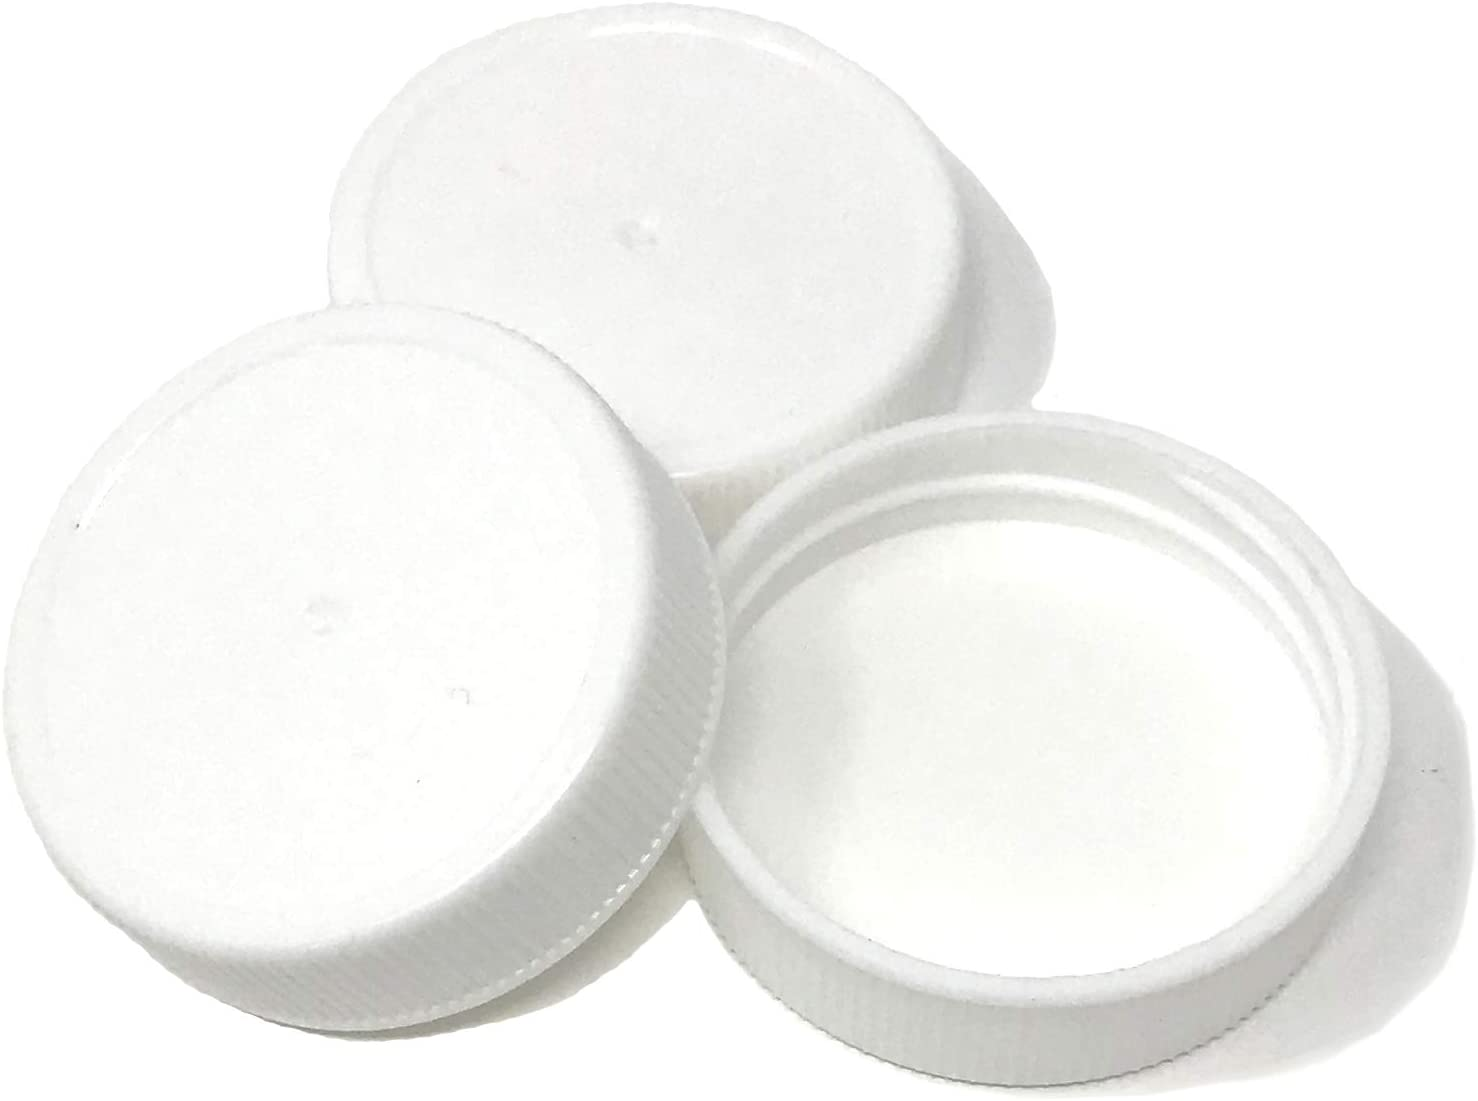 NiceBottles - Screw Caps, 38/400, White - Pack of 20 - Compatible with NiceBottles 12oz Beverage/Sauce and Gallon Jugs